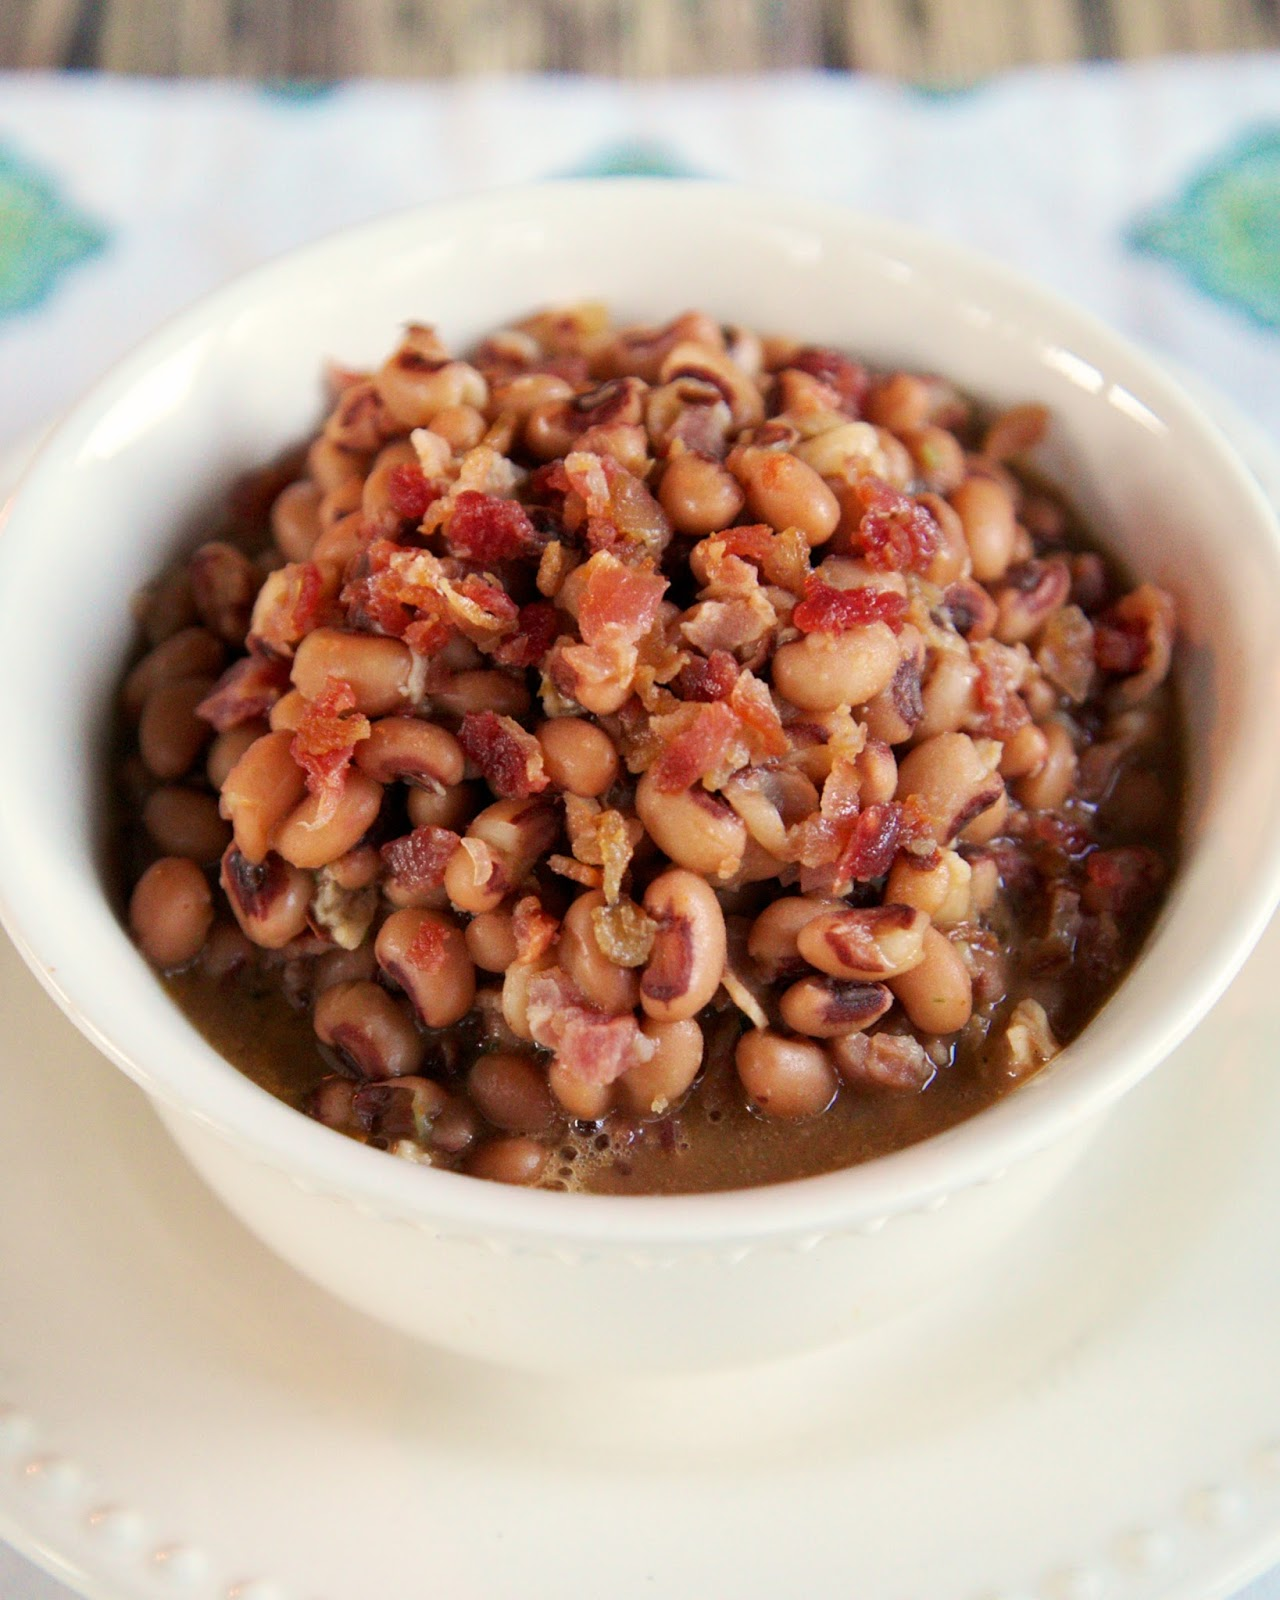 Cajun Black-Eyed Peas Recipe - bacon, black-eyed peas, chicken broth, hot sauce and cajun seasoning - great way to doctor up canned black-eyed peas!